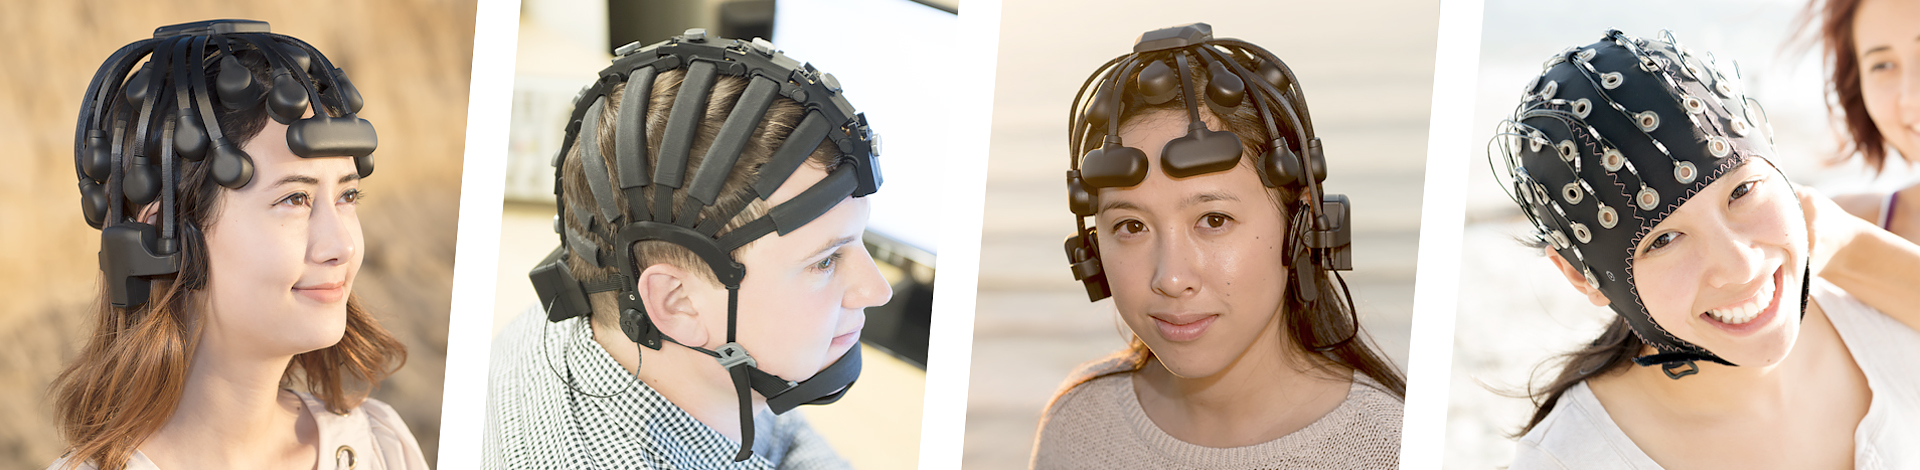 Cognionics Wireless Dry EEG Electrode Sensor Headsets